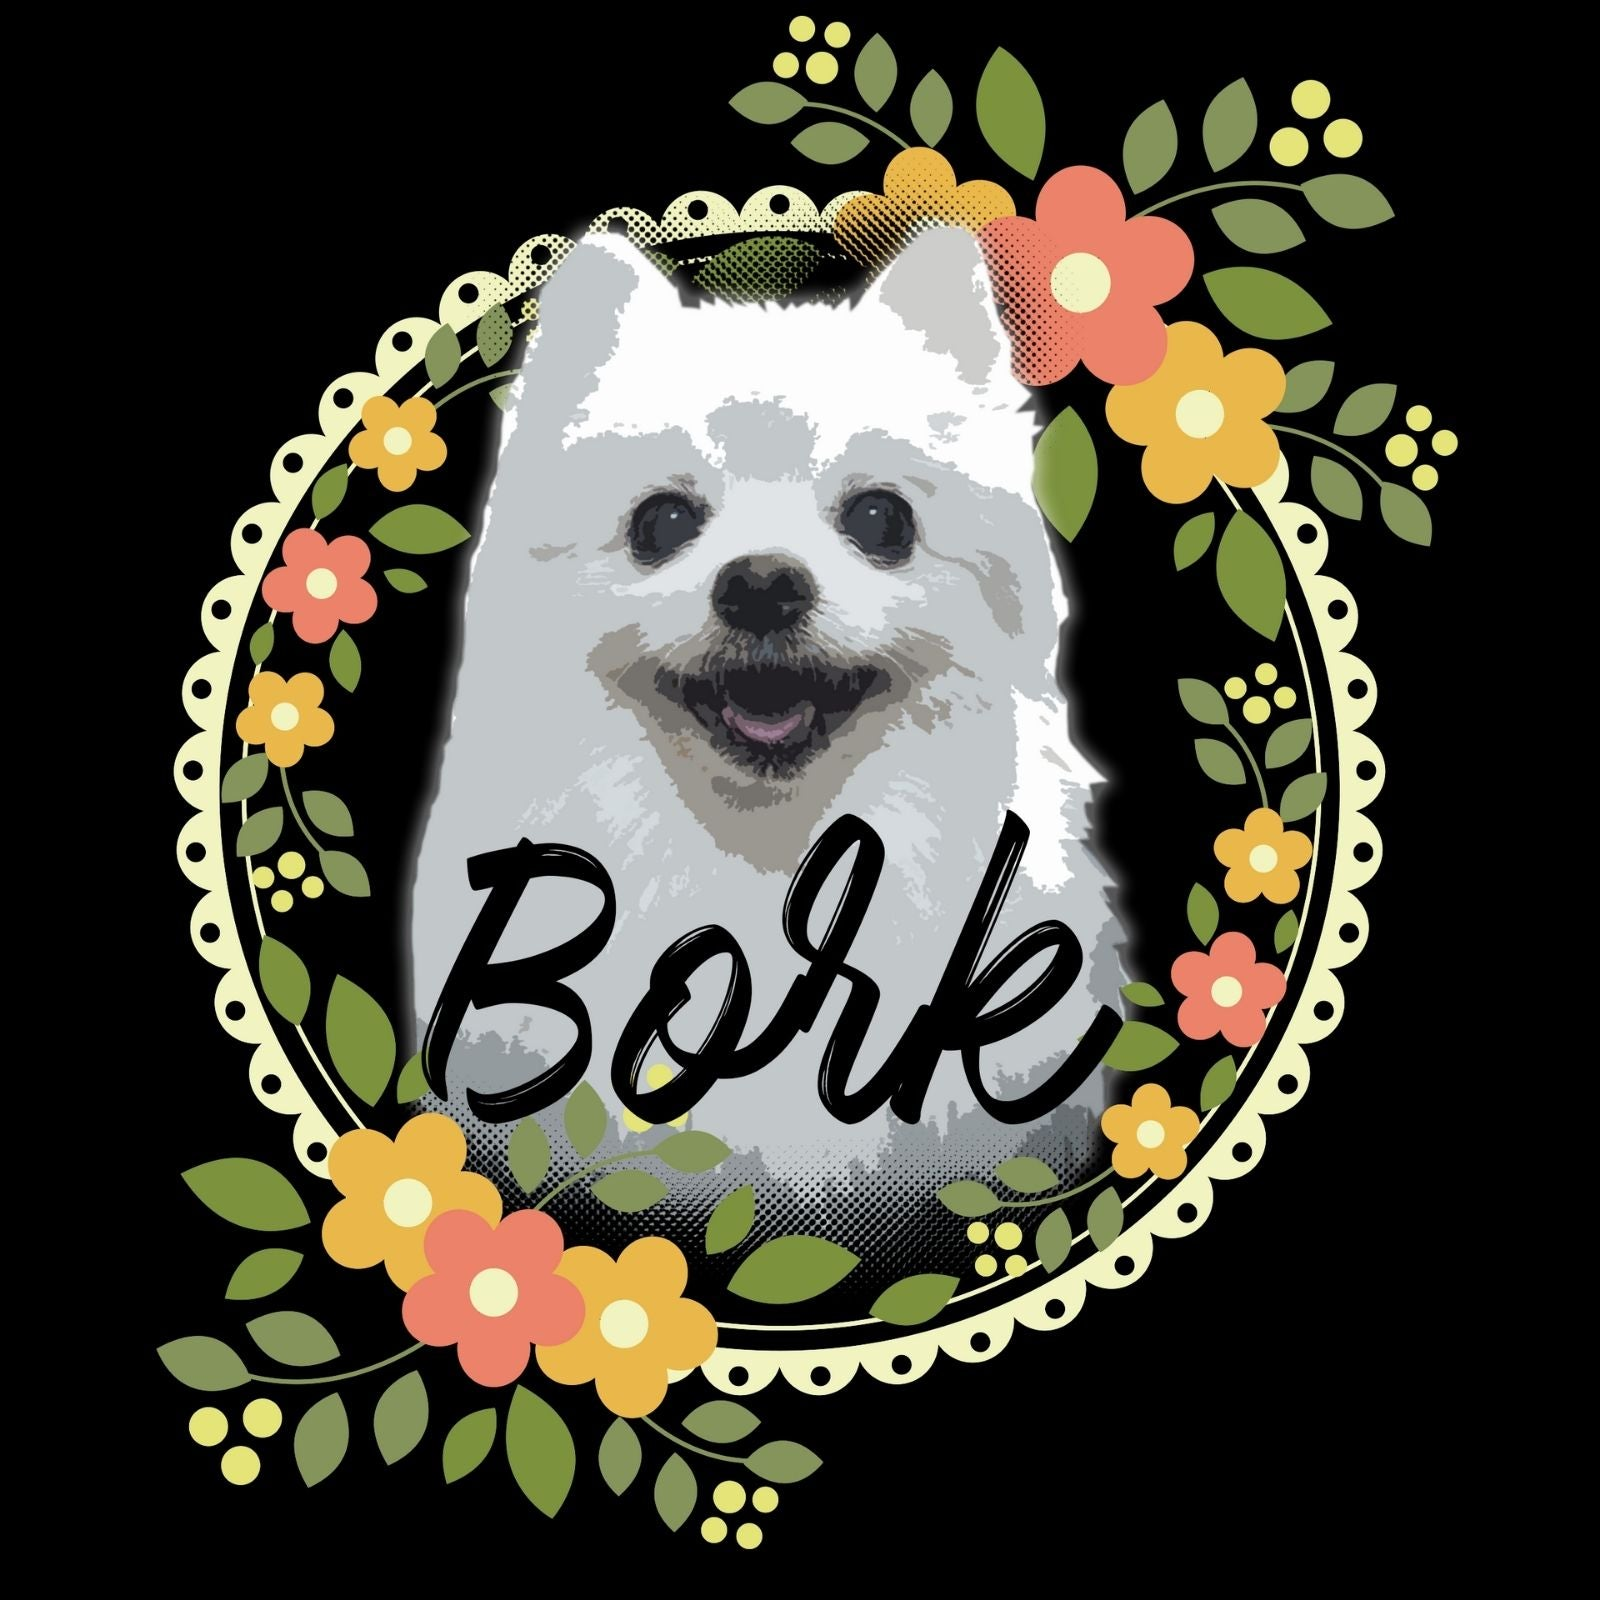 Bork Gave With Flowers - Bastard Graphics